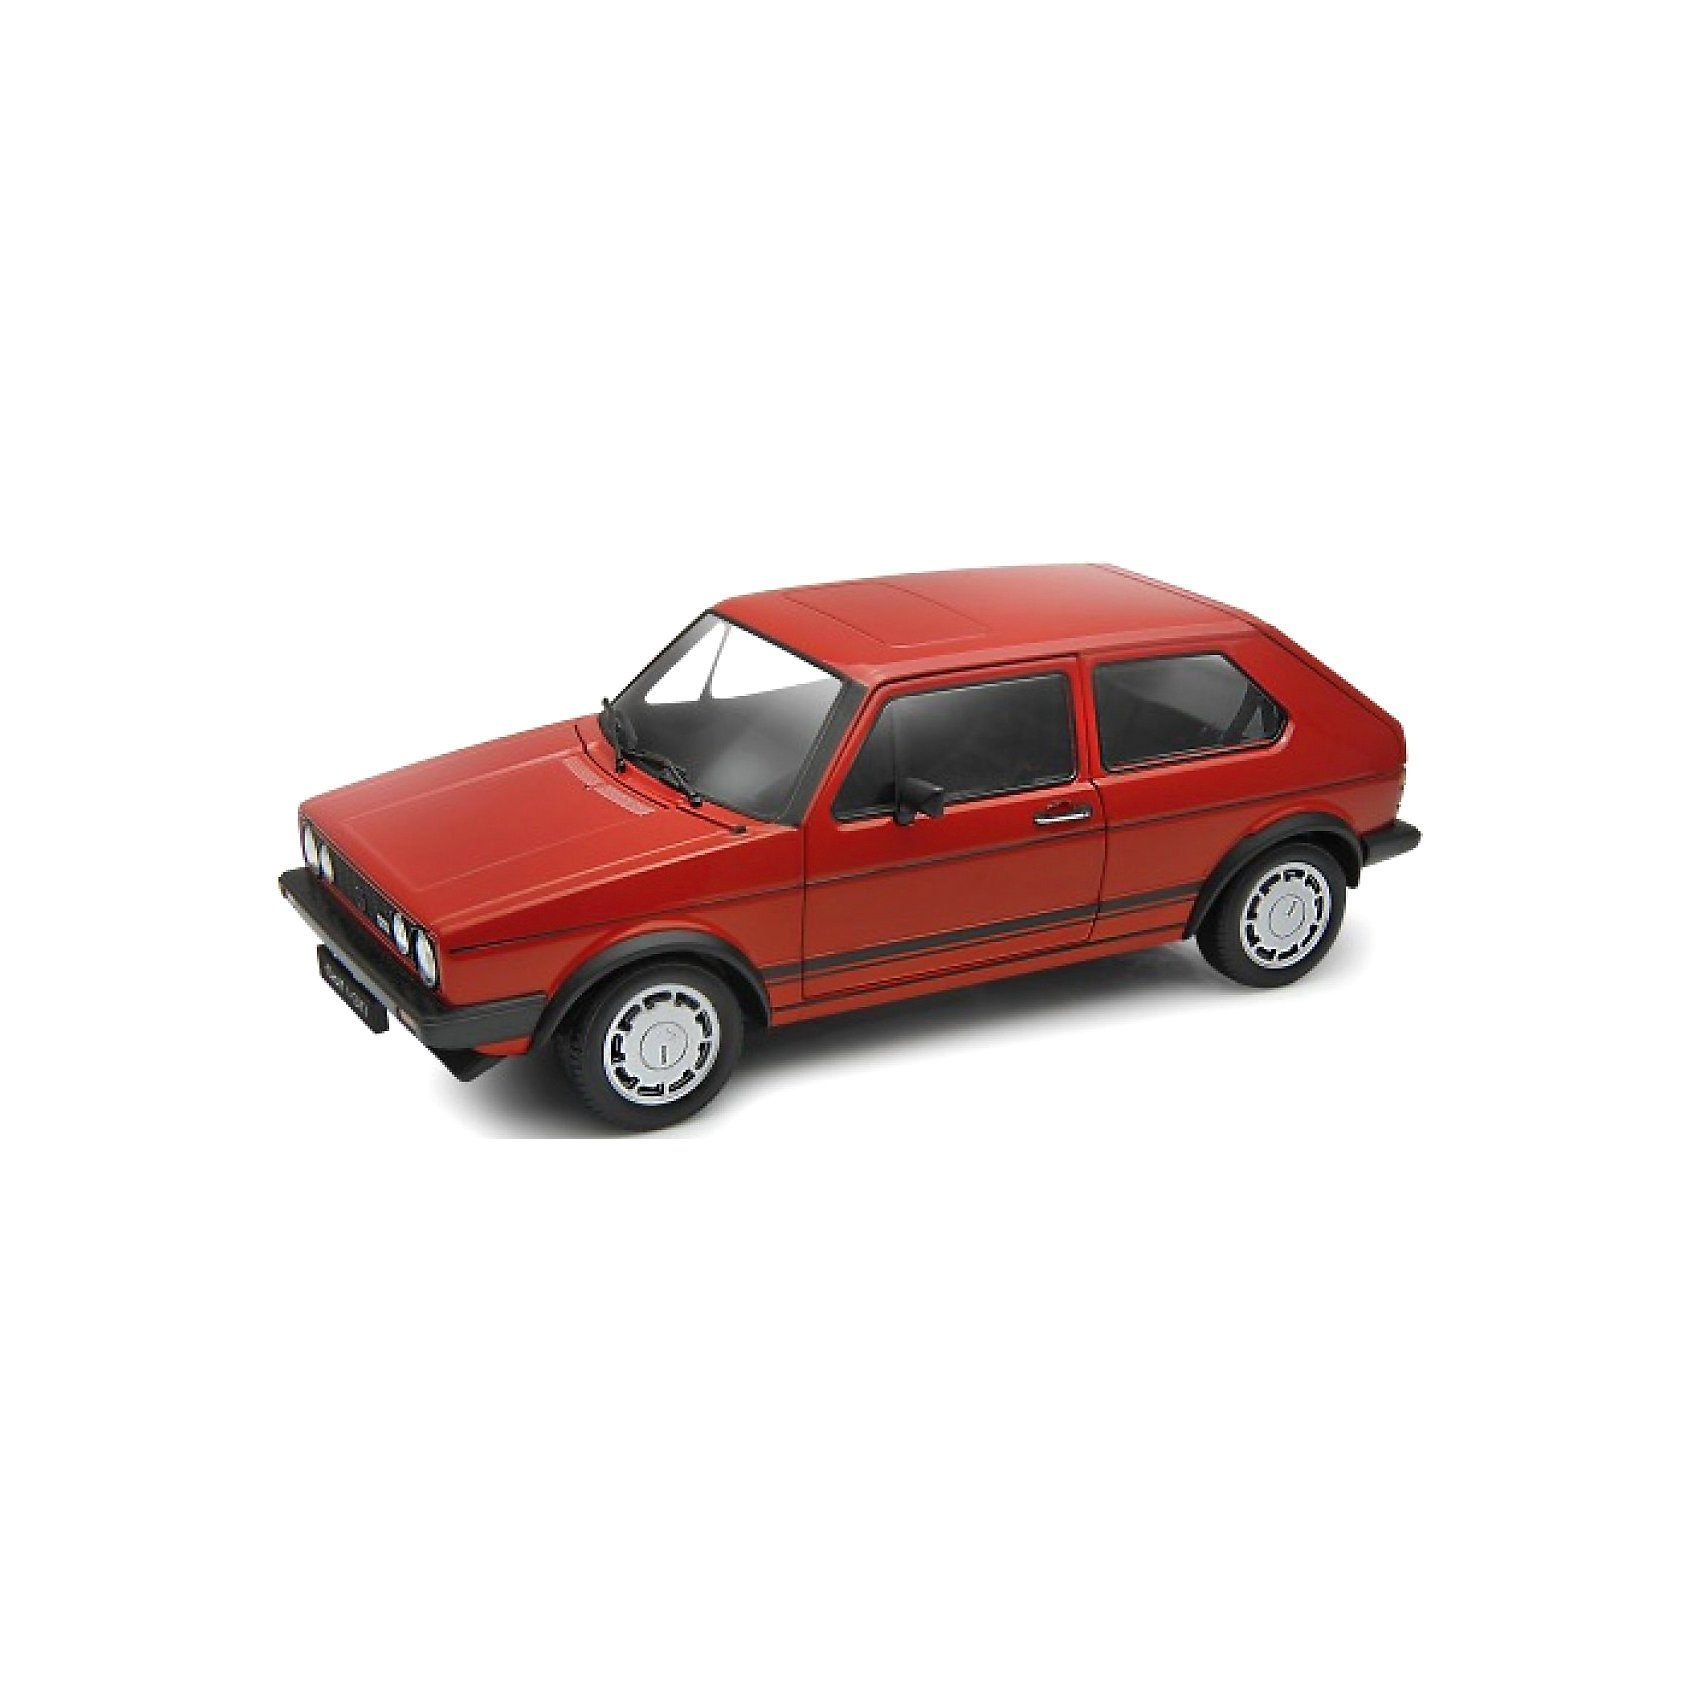 Welly VW Golf I GTI, 1:18